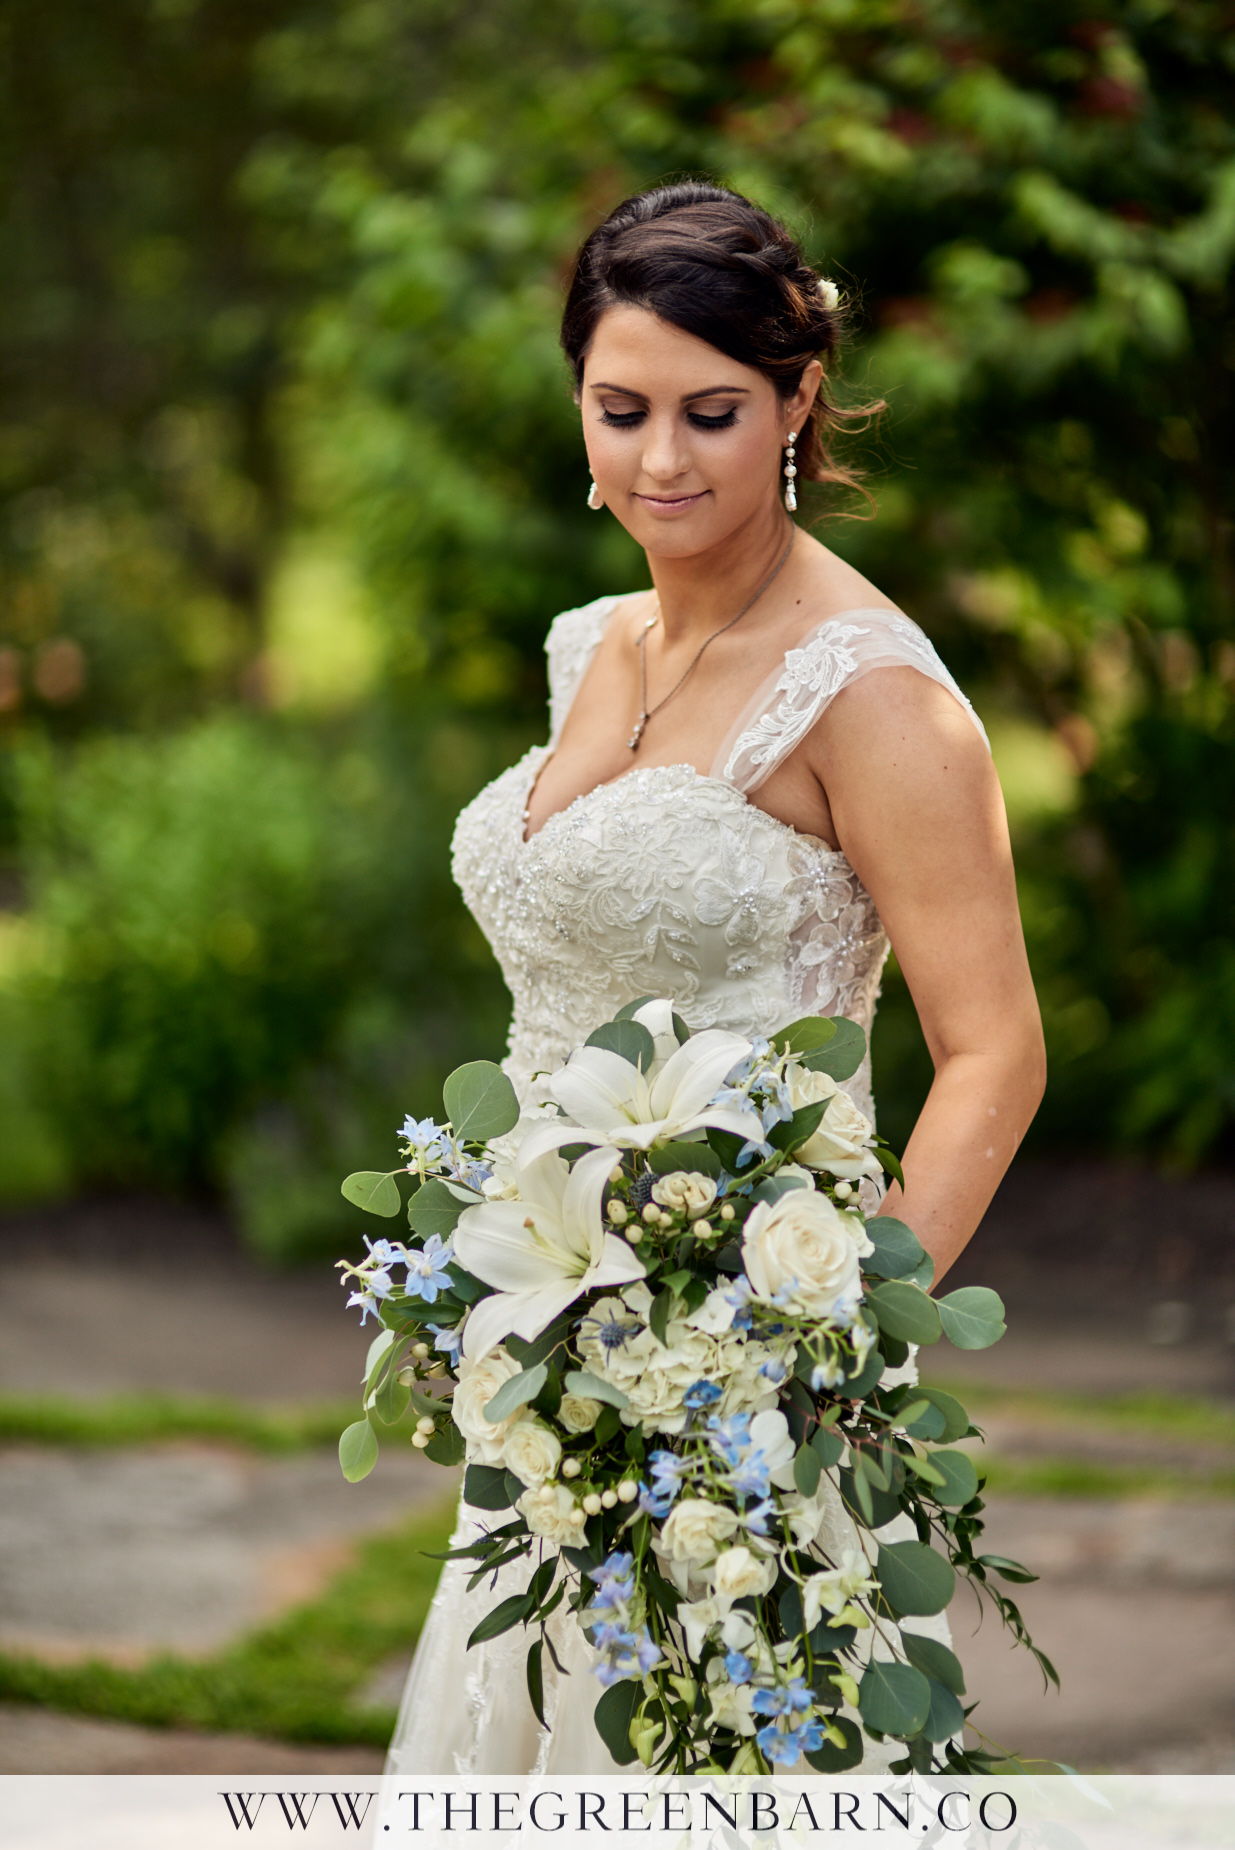 Bride Bridal Portrait with Blue and White Bouquet at Harrington Farm Photo by Cate Bligh of The Green Barn Wedding Photography LLC